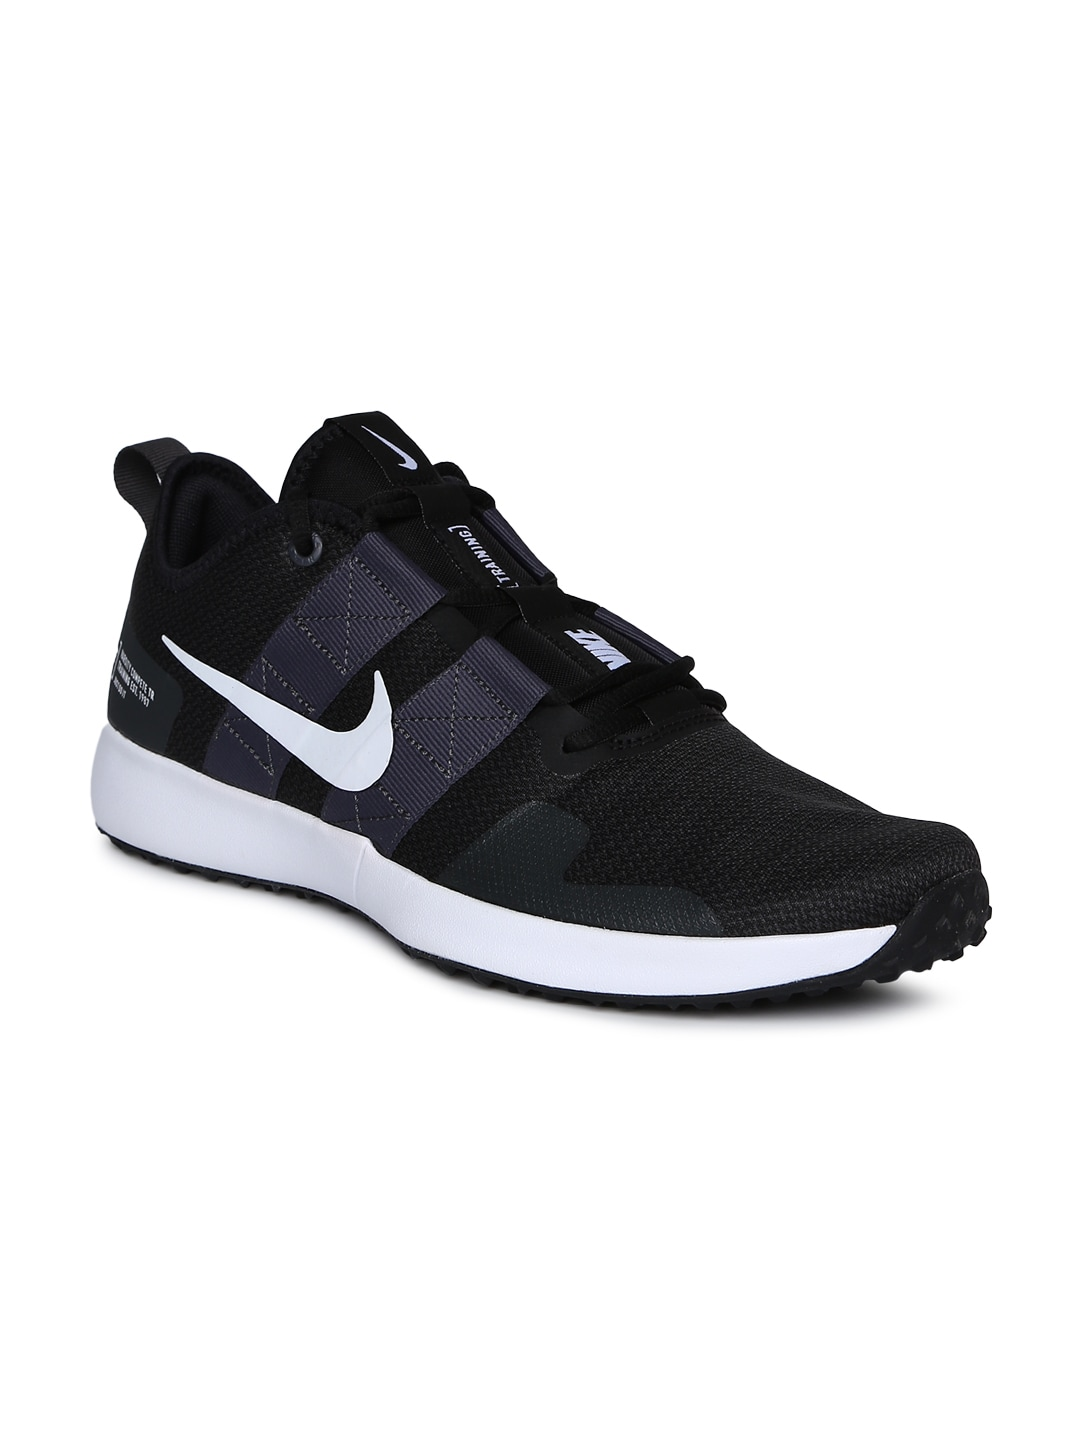 a9afb042b4a70 Nike Black Shoes - Buy Nike Black Shoes Online in India